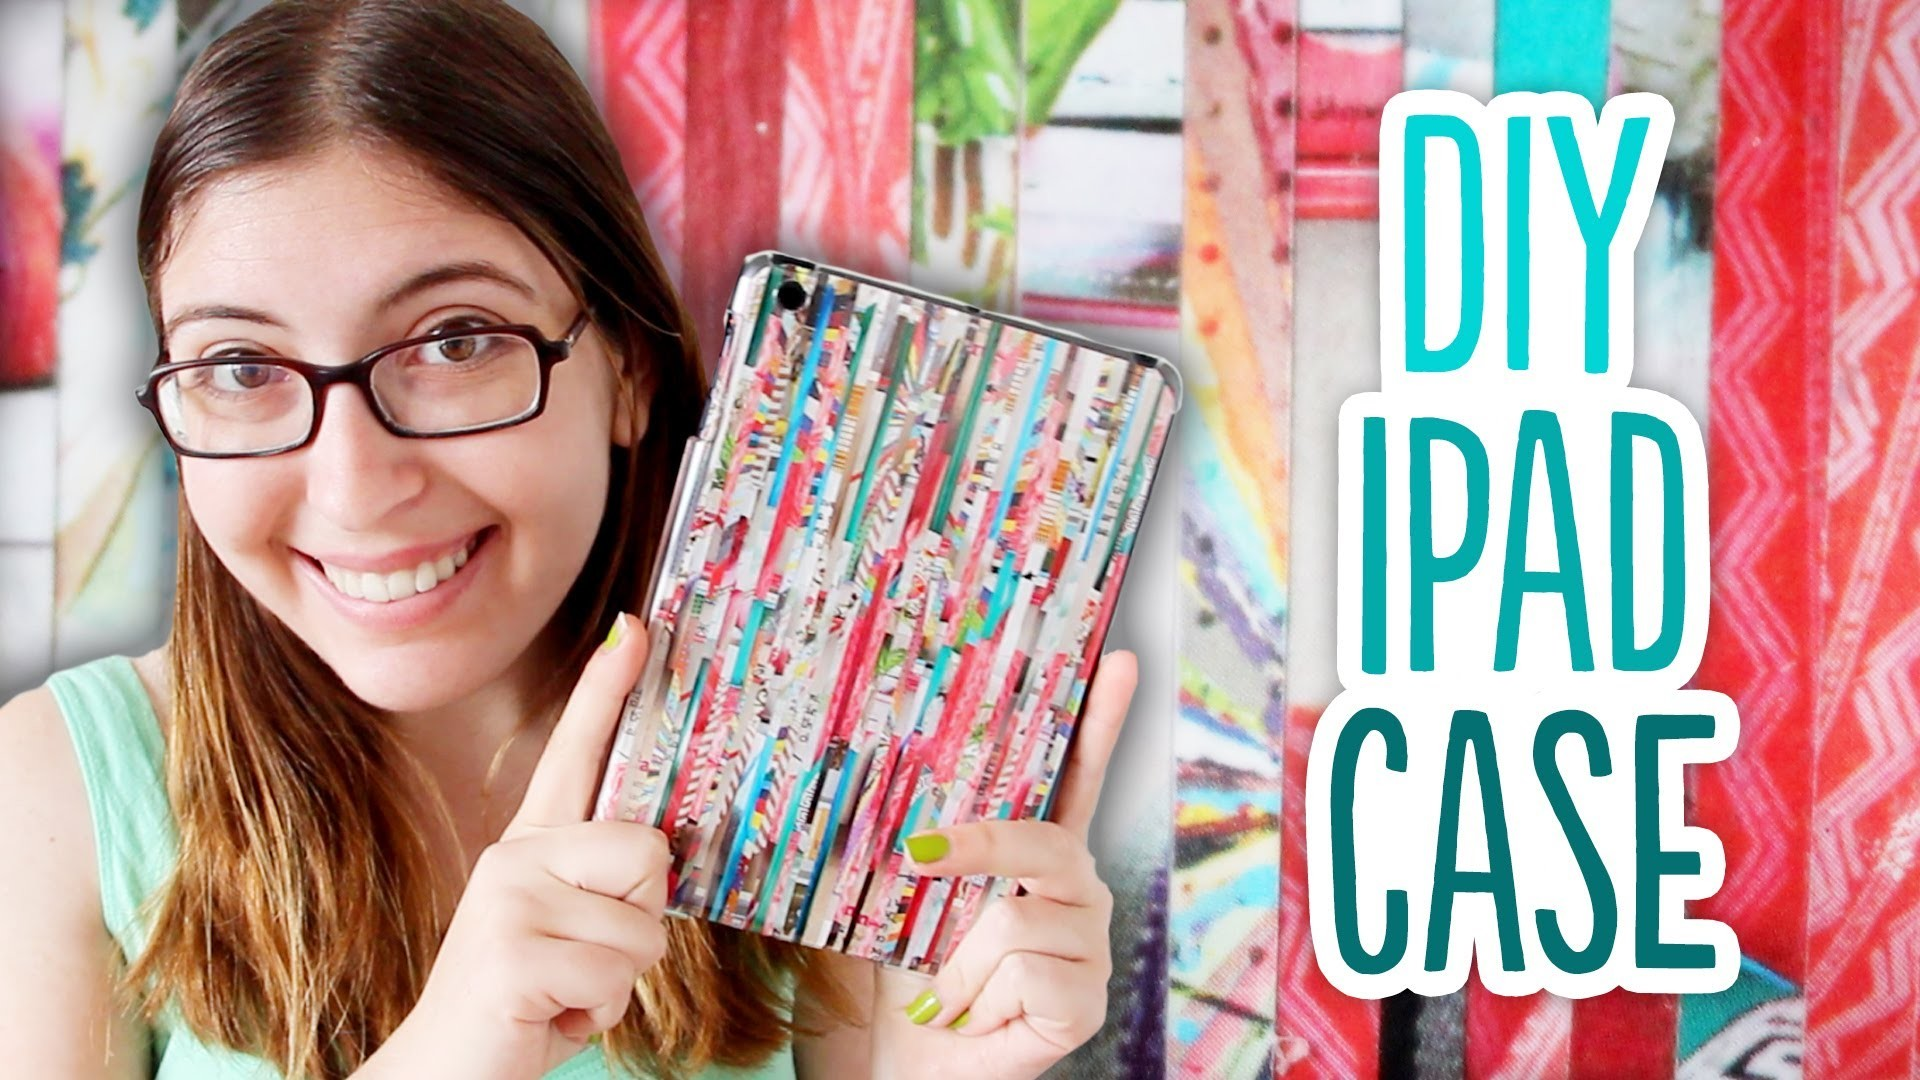 How to Make a DIY iPad Case out of Magazines